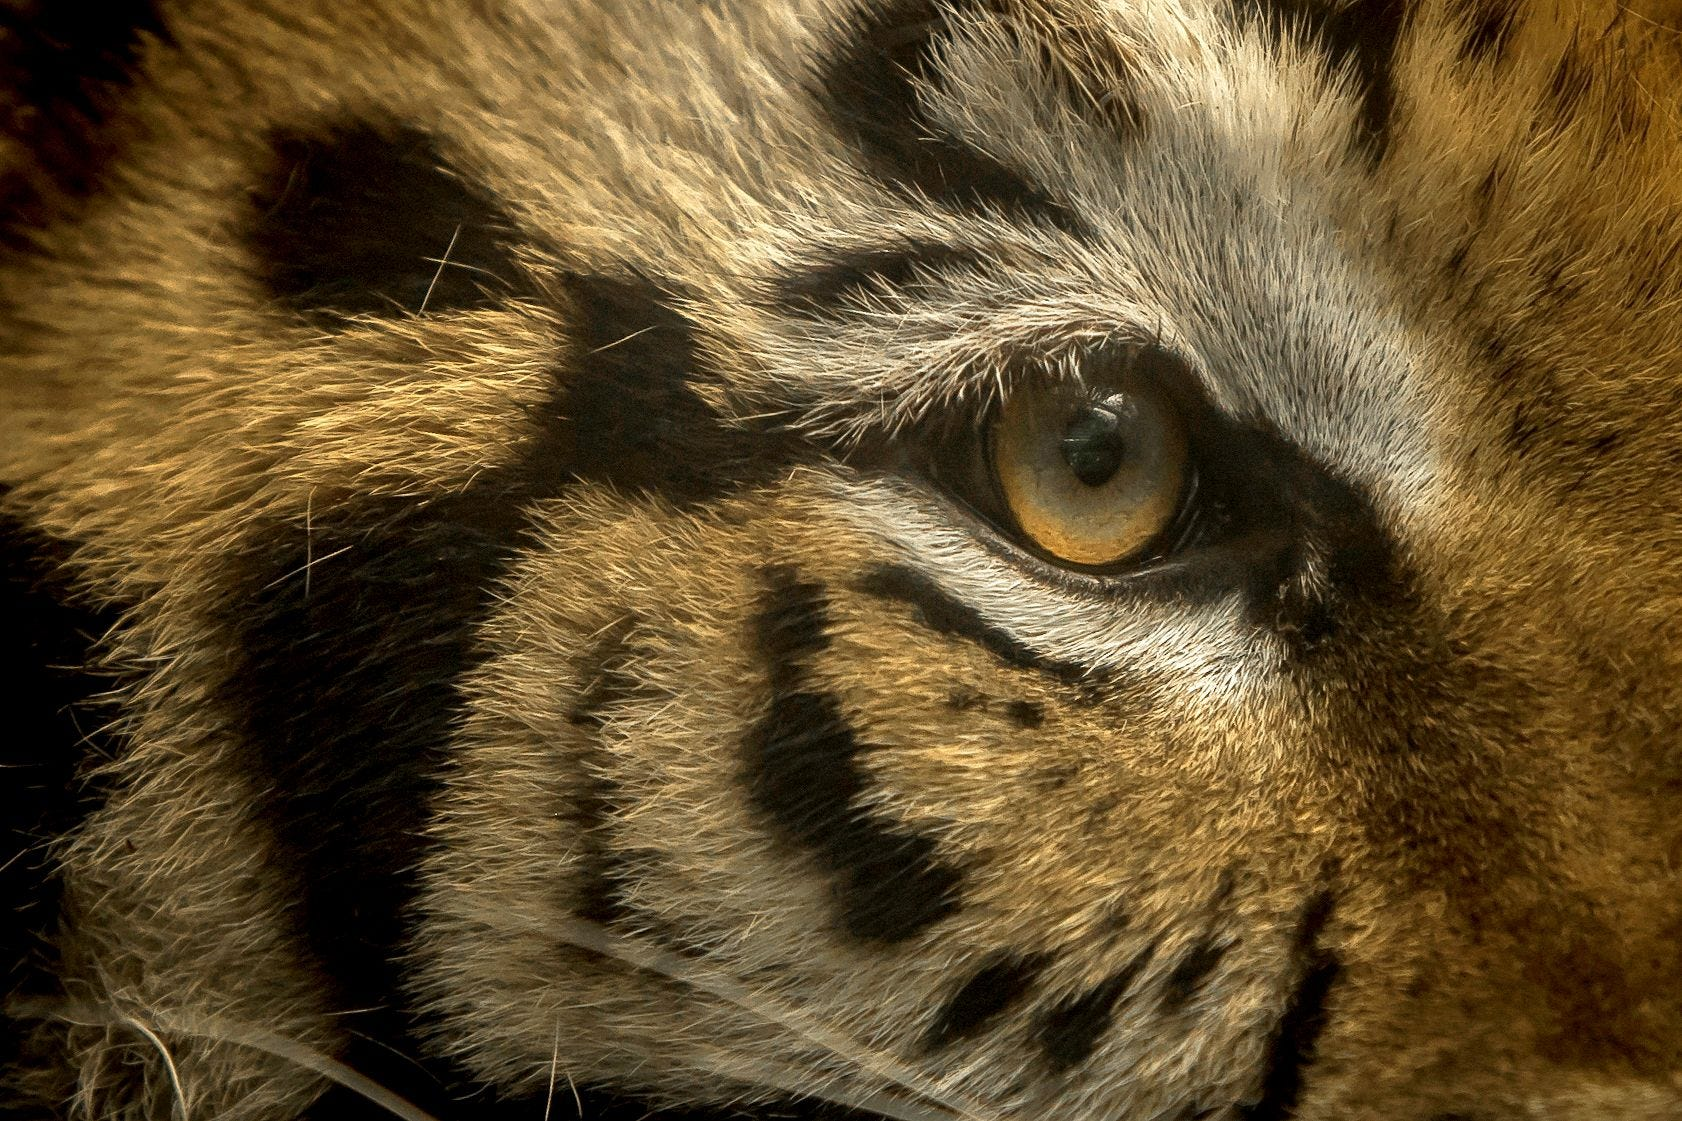 Houston s elusive tiger named India found safe, headed for sanctuary